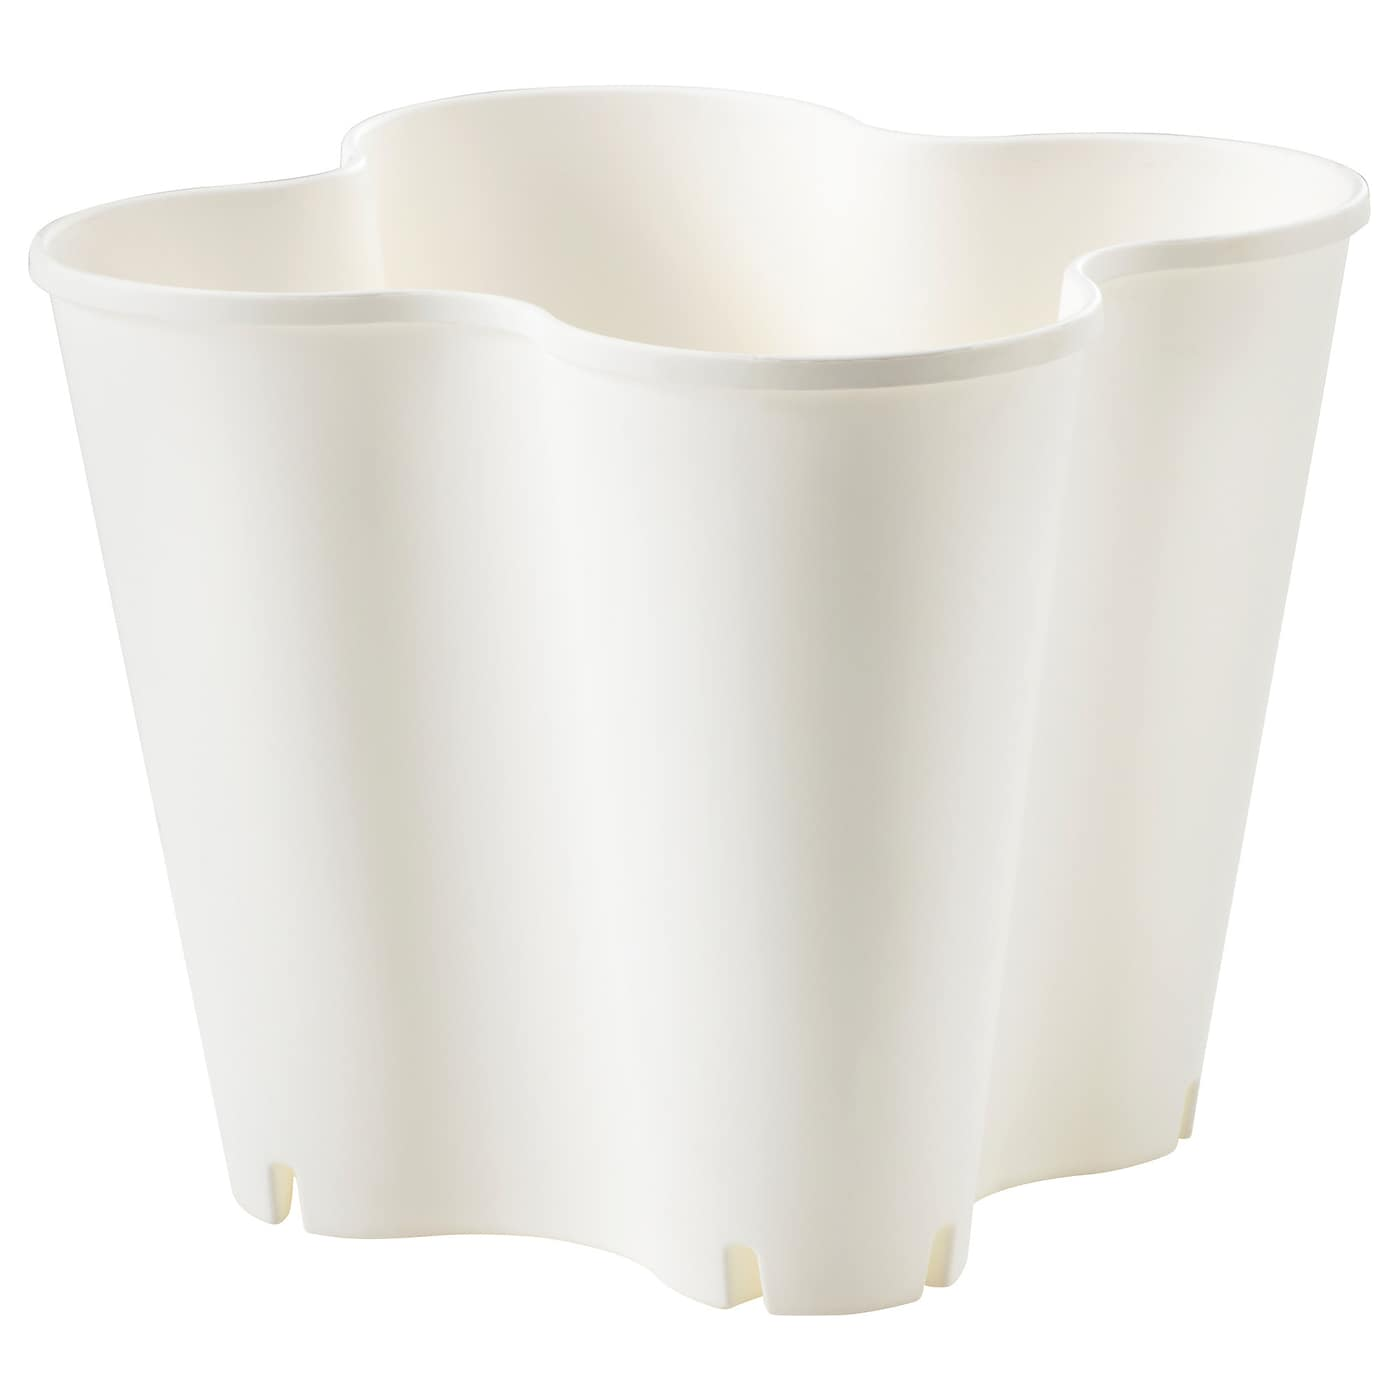 jordgubbe plant pot in outdoor white ikea. Black Bedroom Furniture Sets. Home Design Ideas